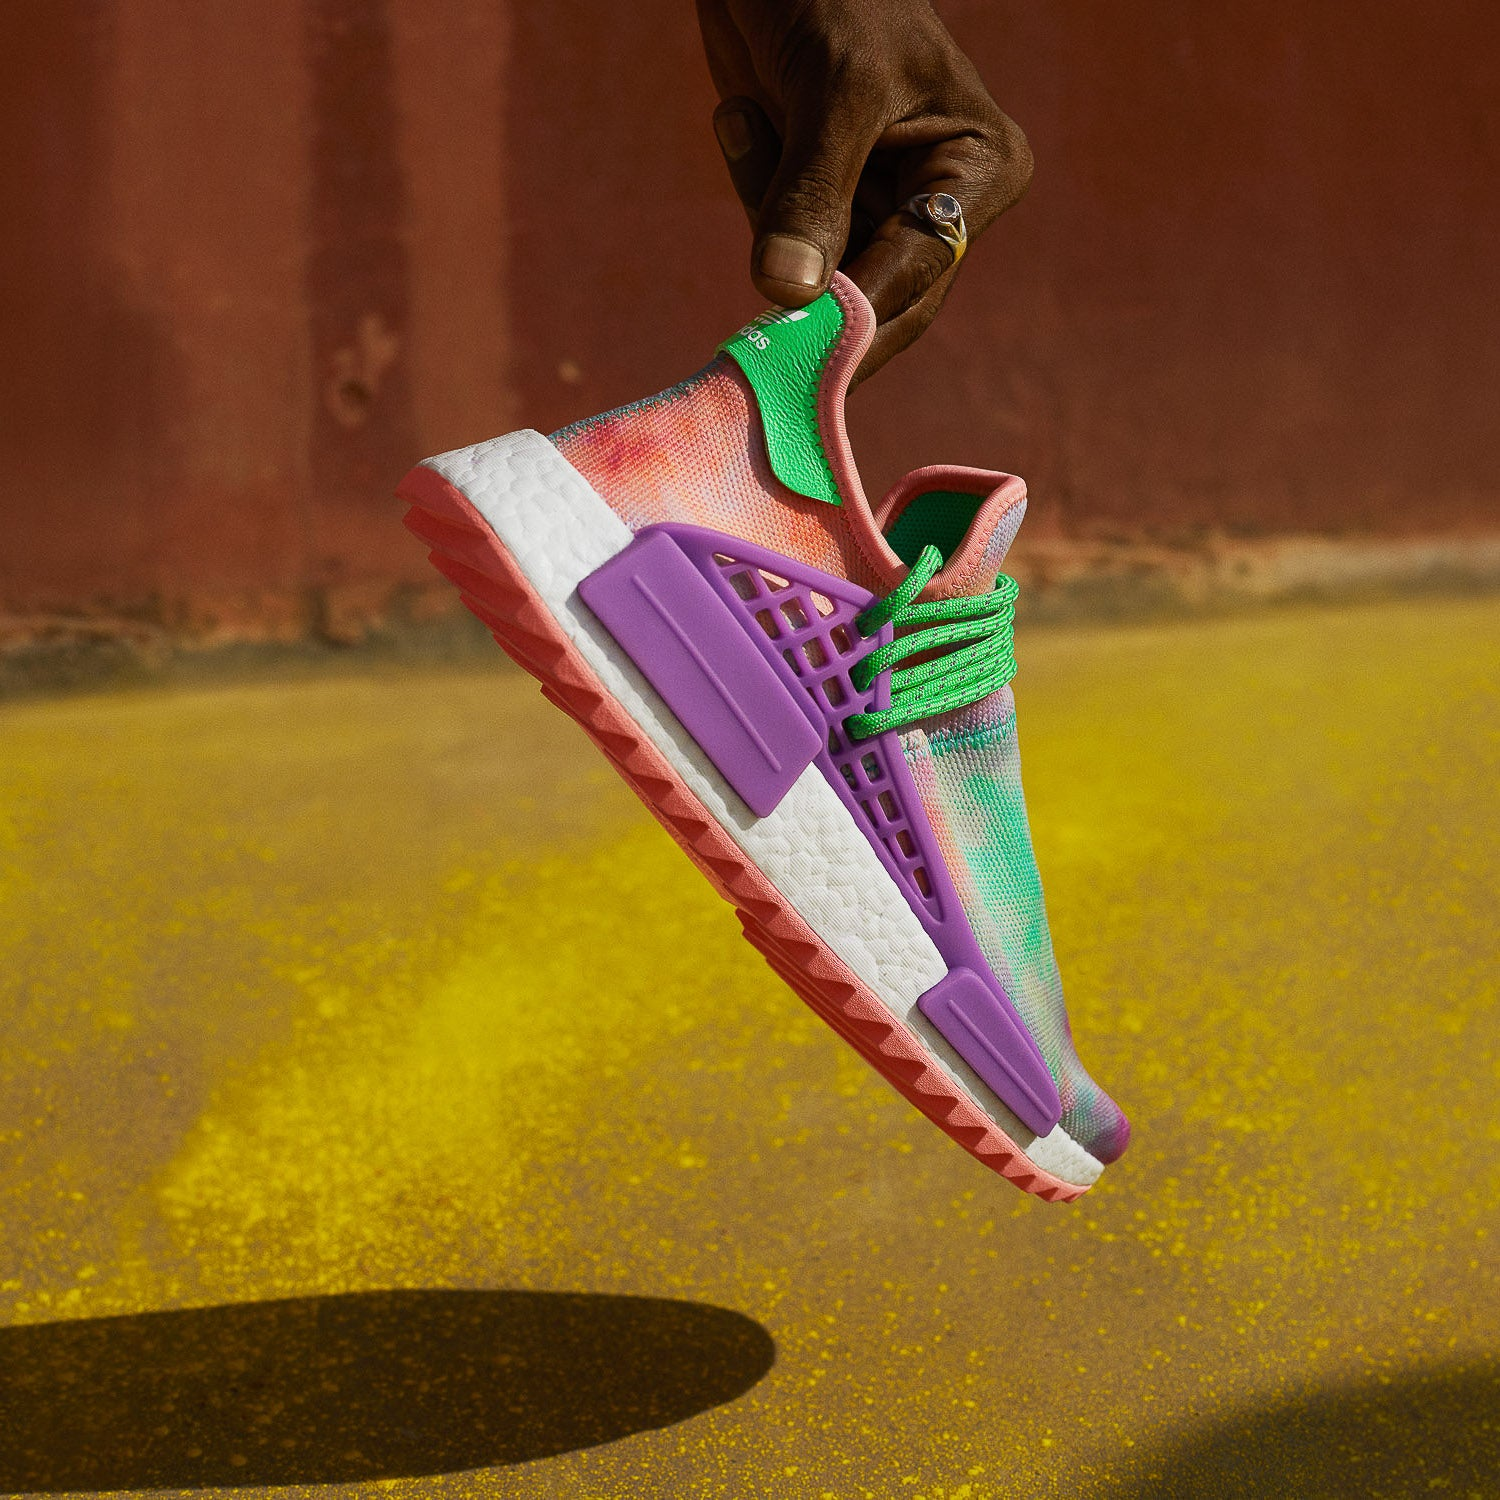 chaussures de sport 39a35 7044a adidas Originals x Pharrell Williams HU Holi Collection ...